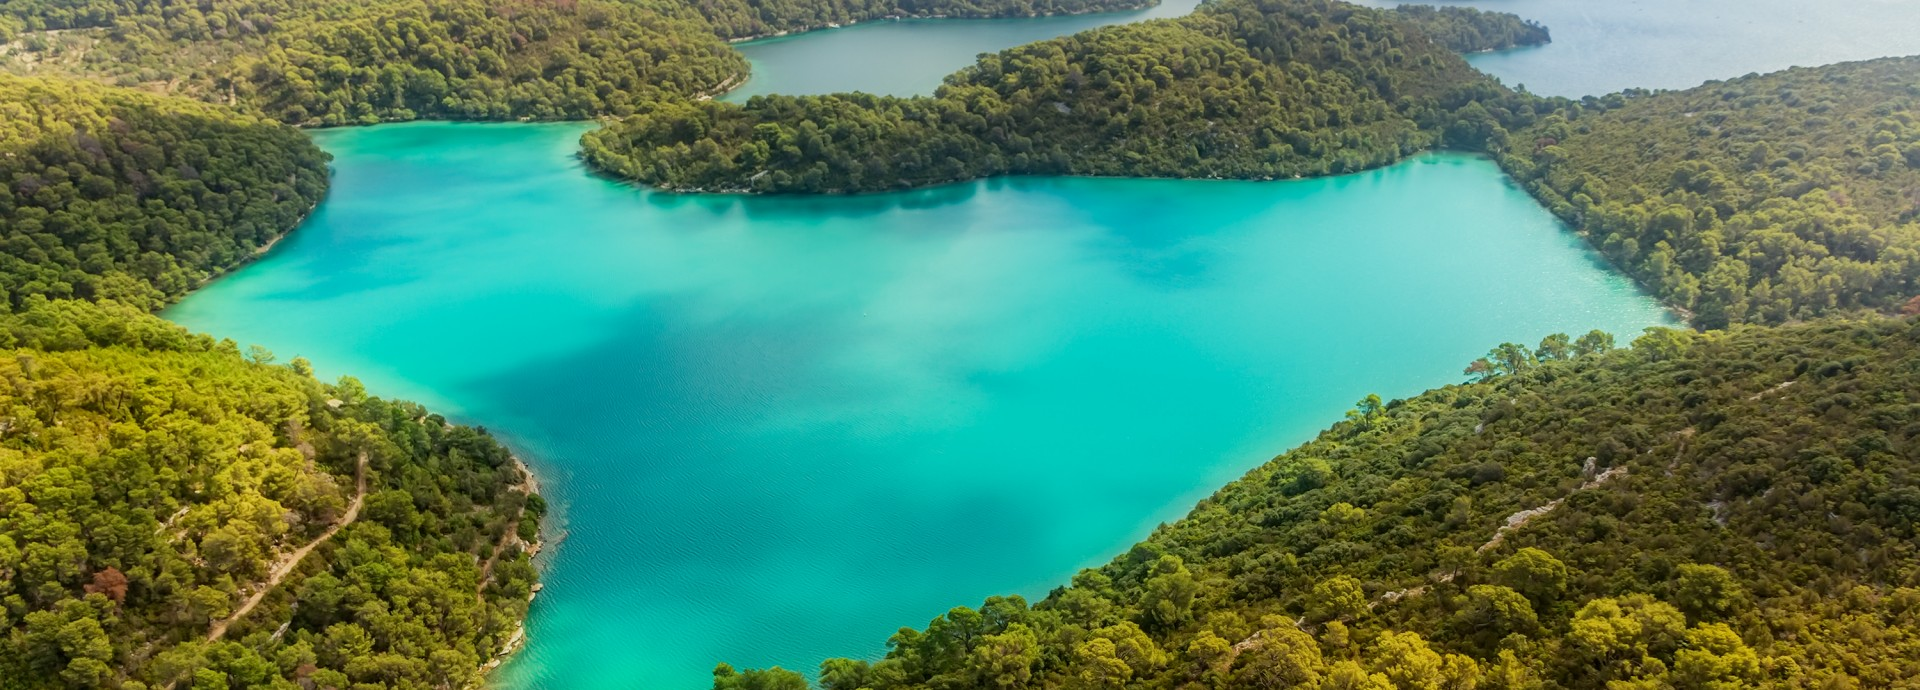 National Park, Mljet